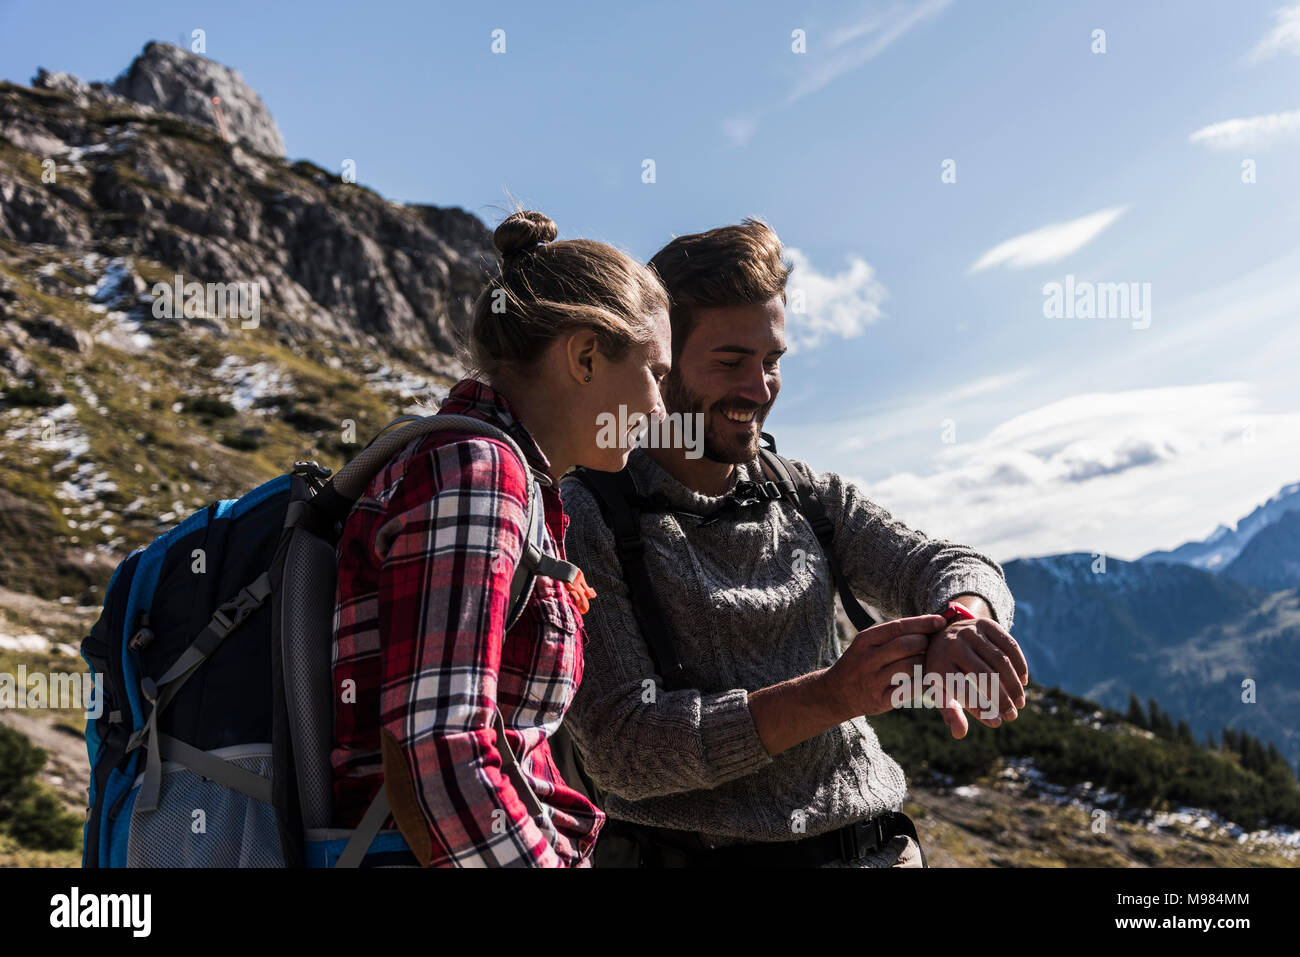 Austria, Tyrol, smiling young couple looking at watch in mountainscape - Stock Image